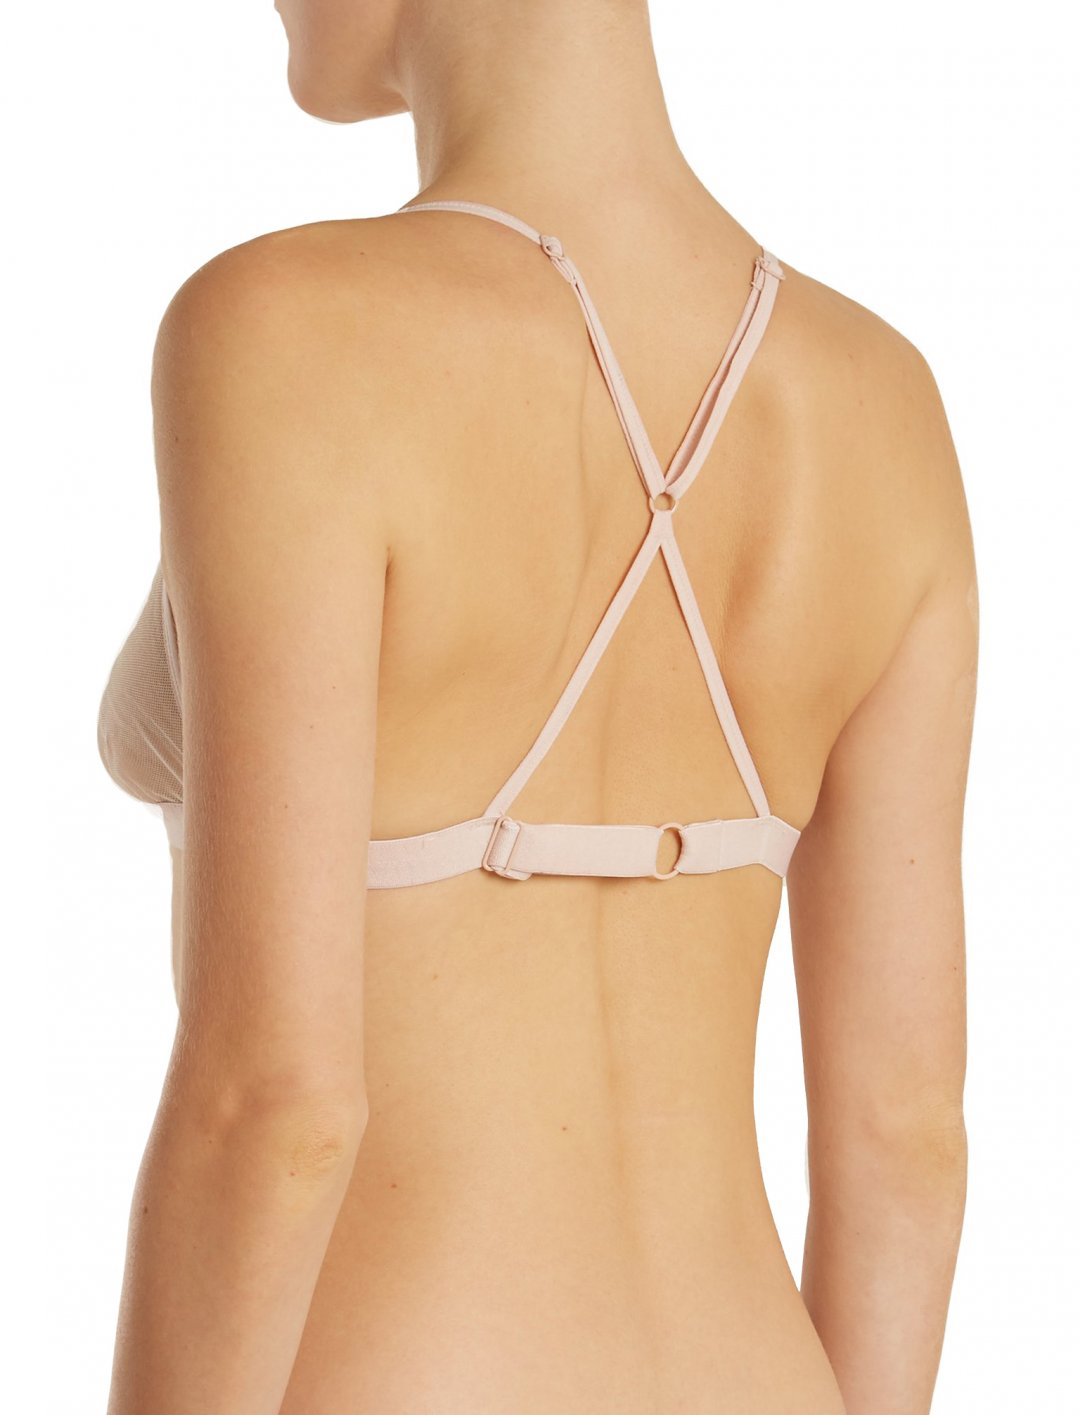 Skin Triangle Bra Clothing Skin